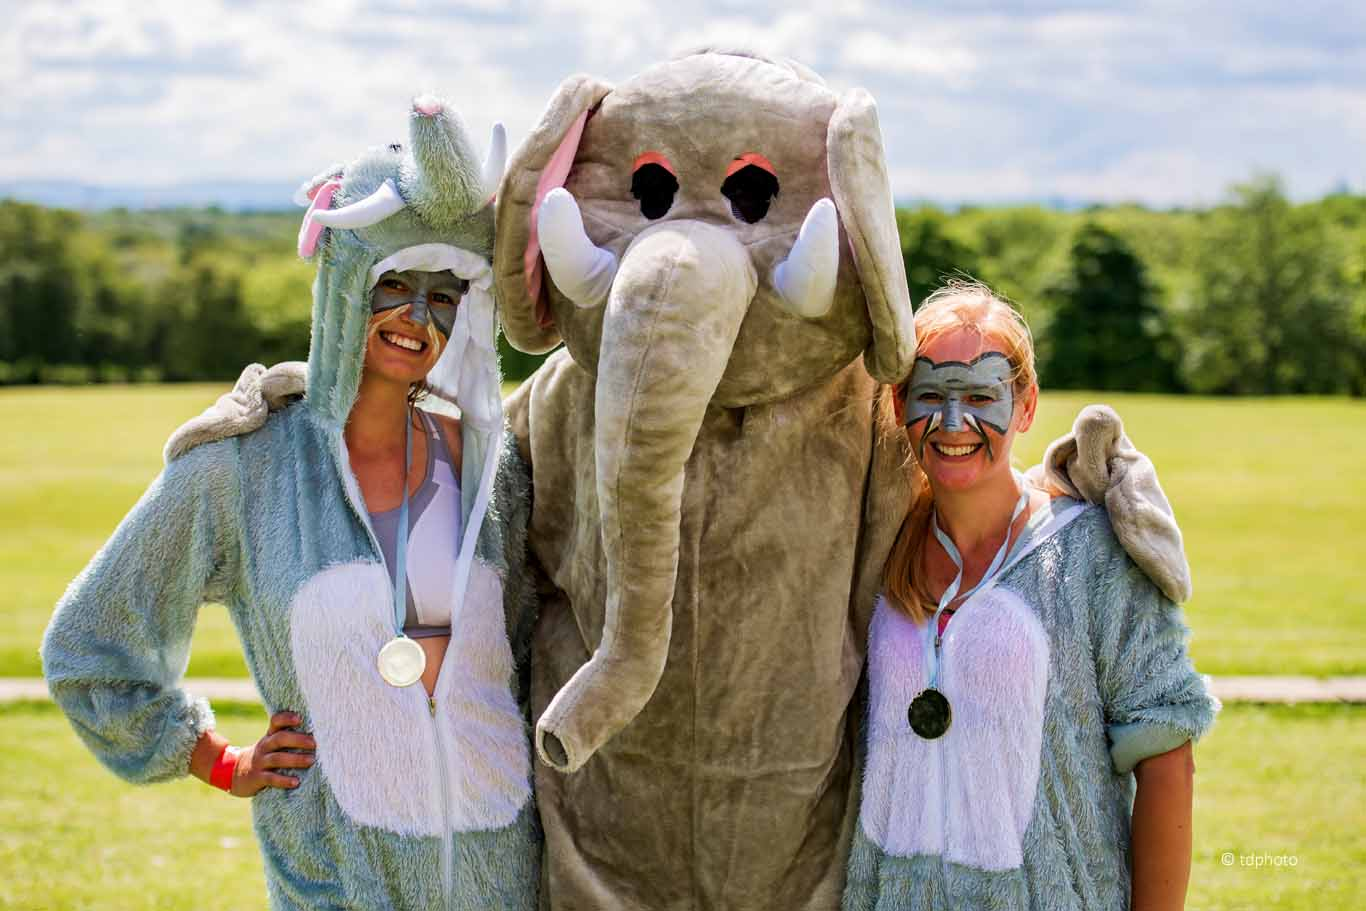 Two legged elephants take over Heaton Park to fund conservation efforts